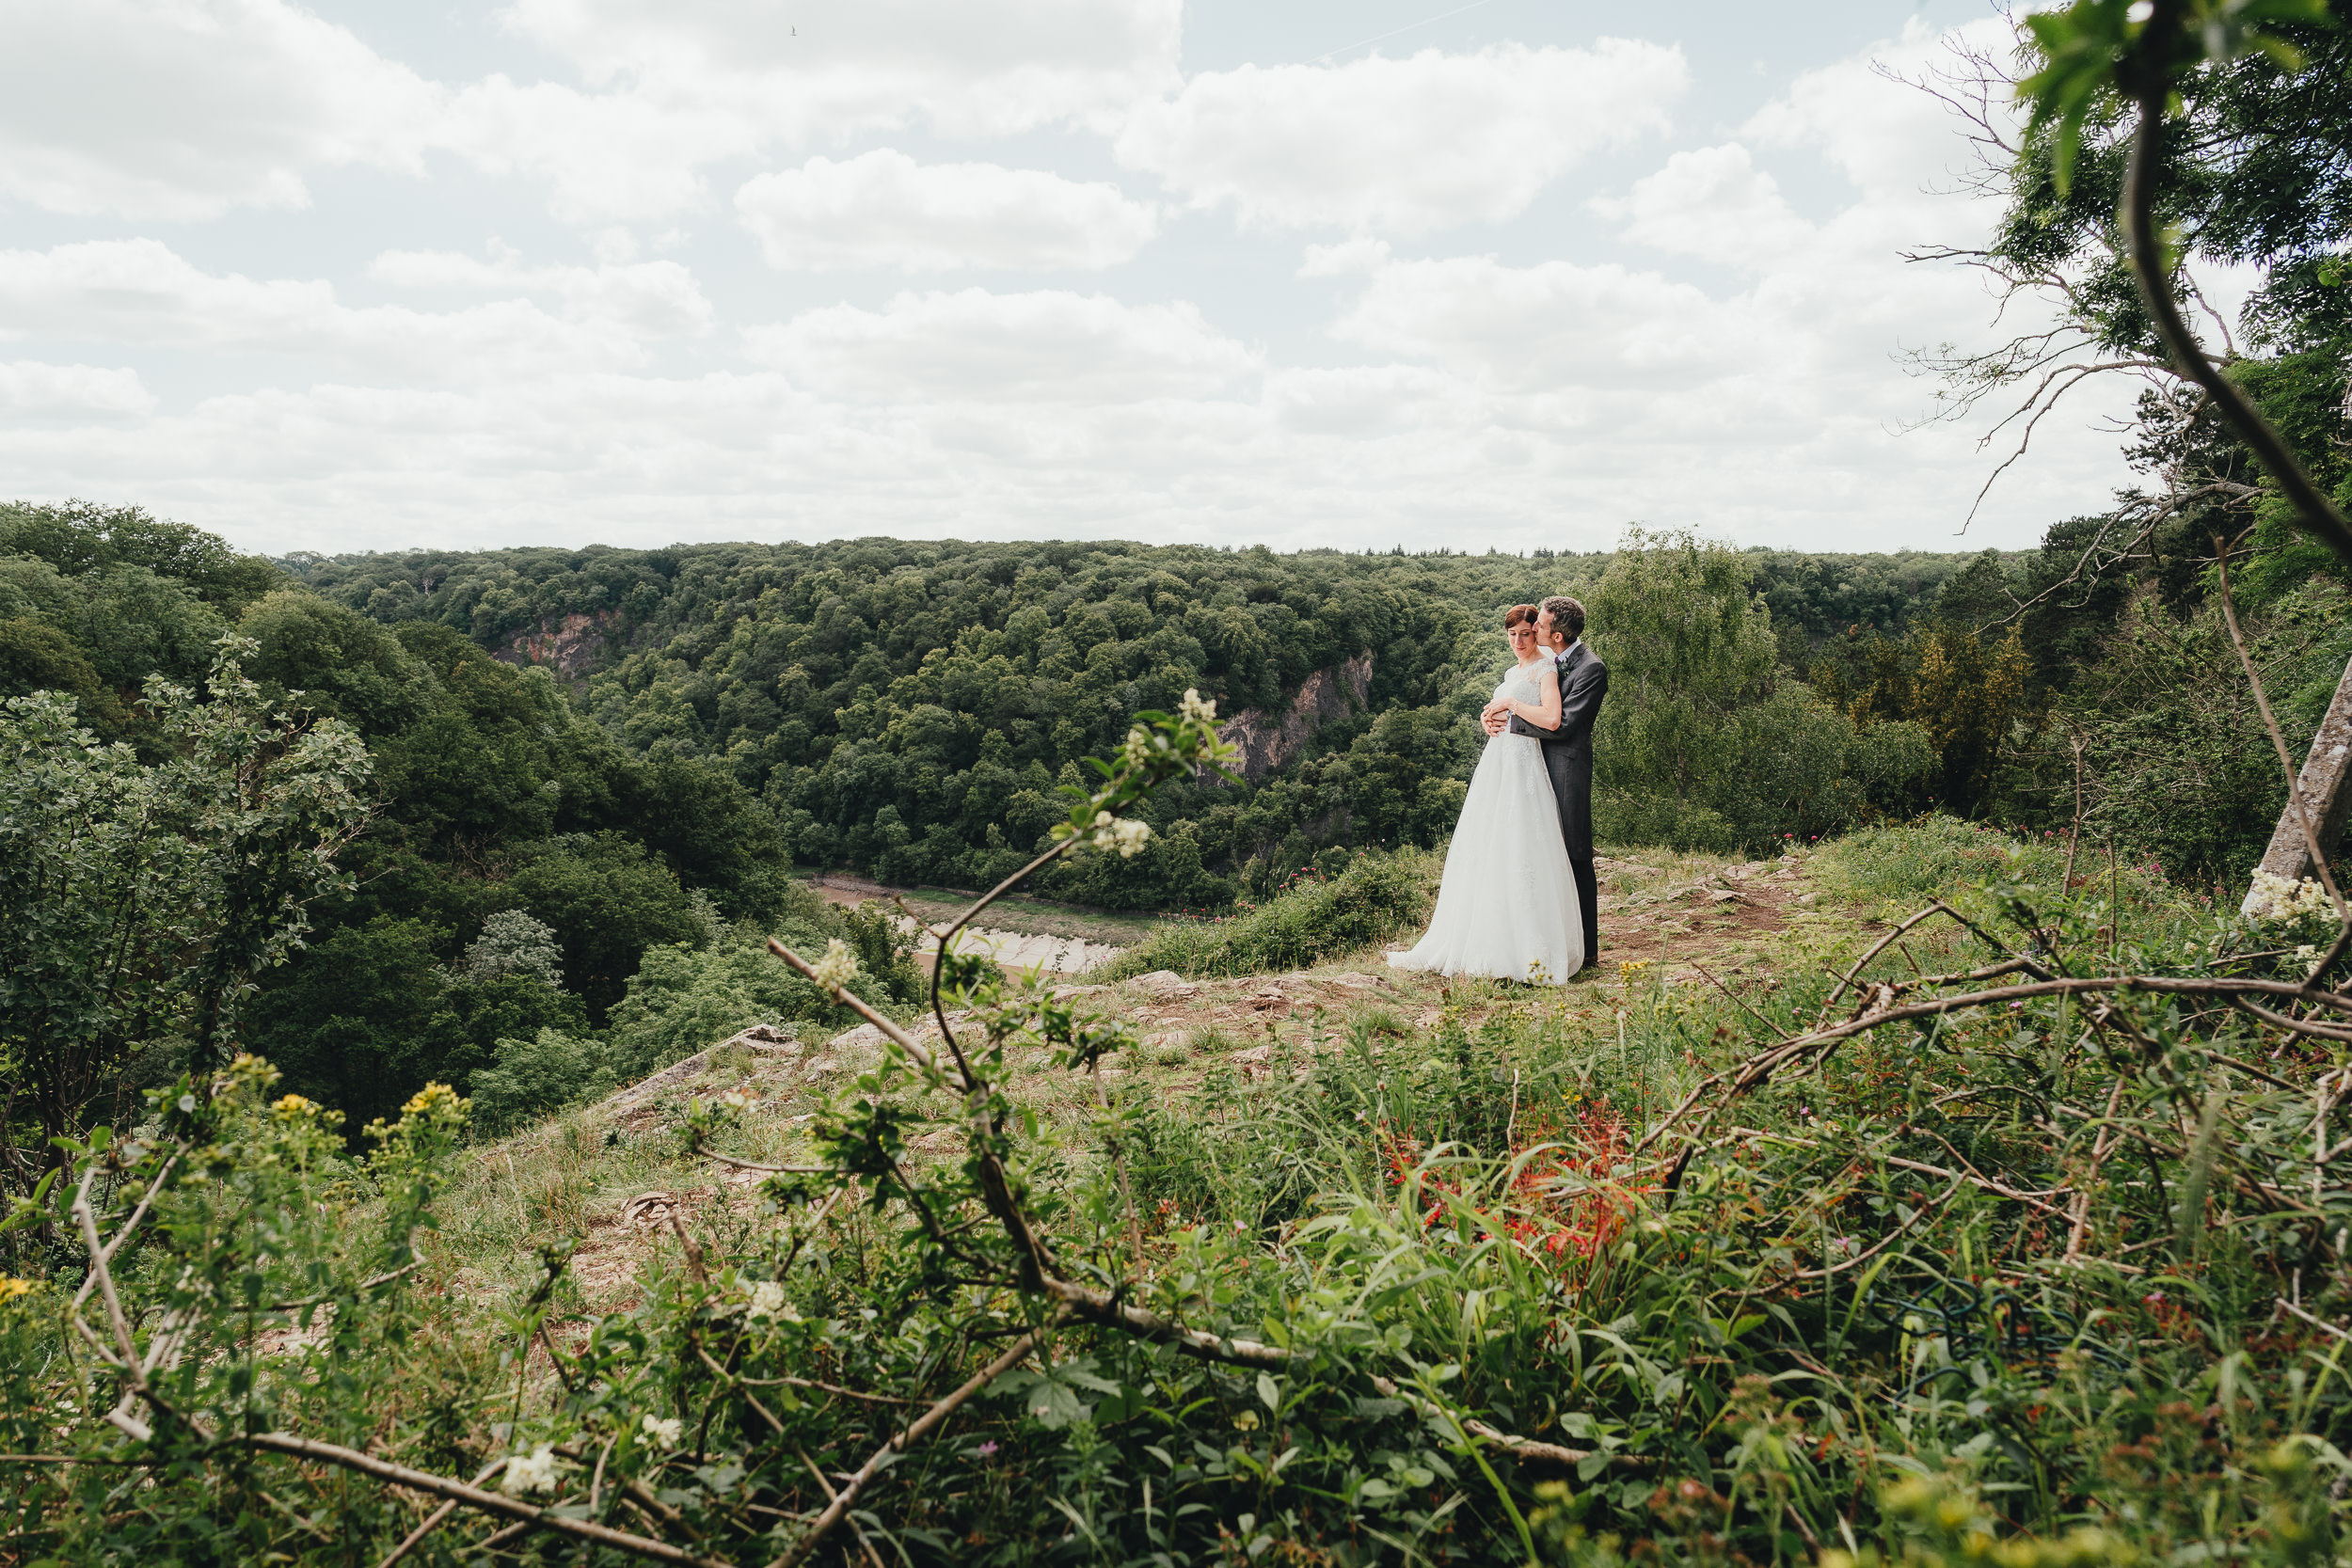 The Bride and Groom look across the Avon Gorge from the Clifton Downs